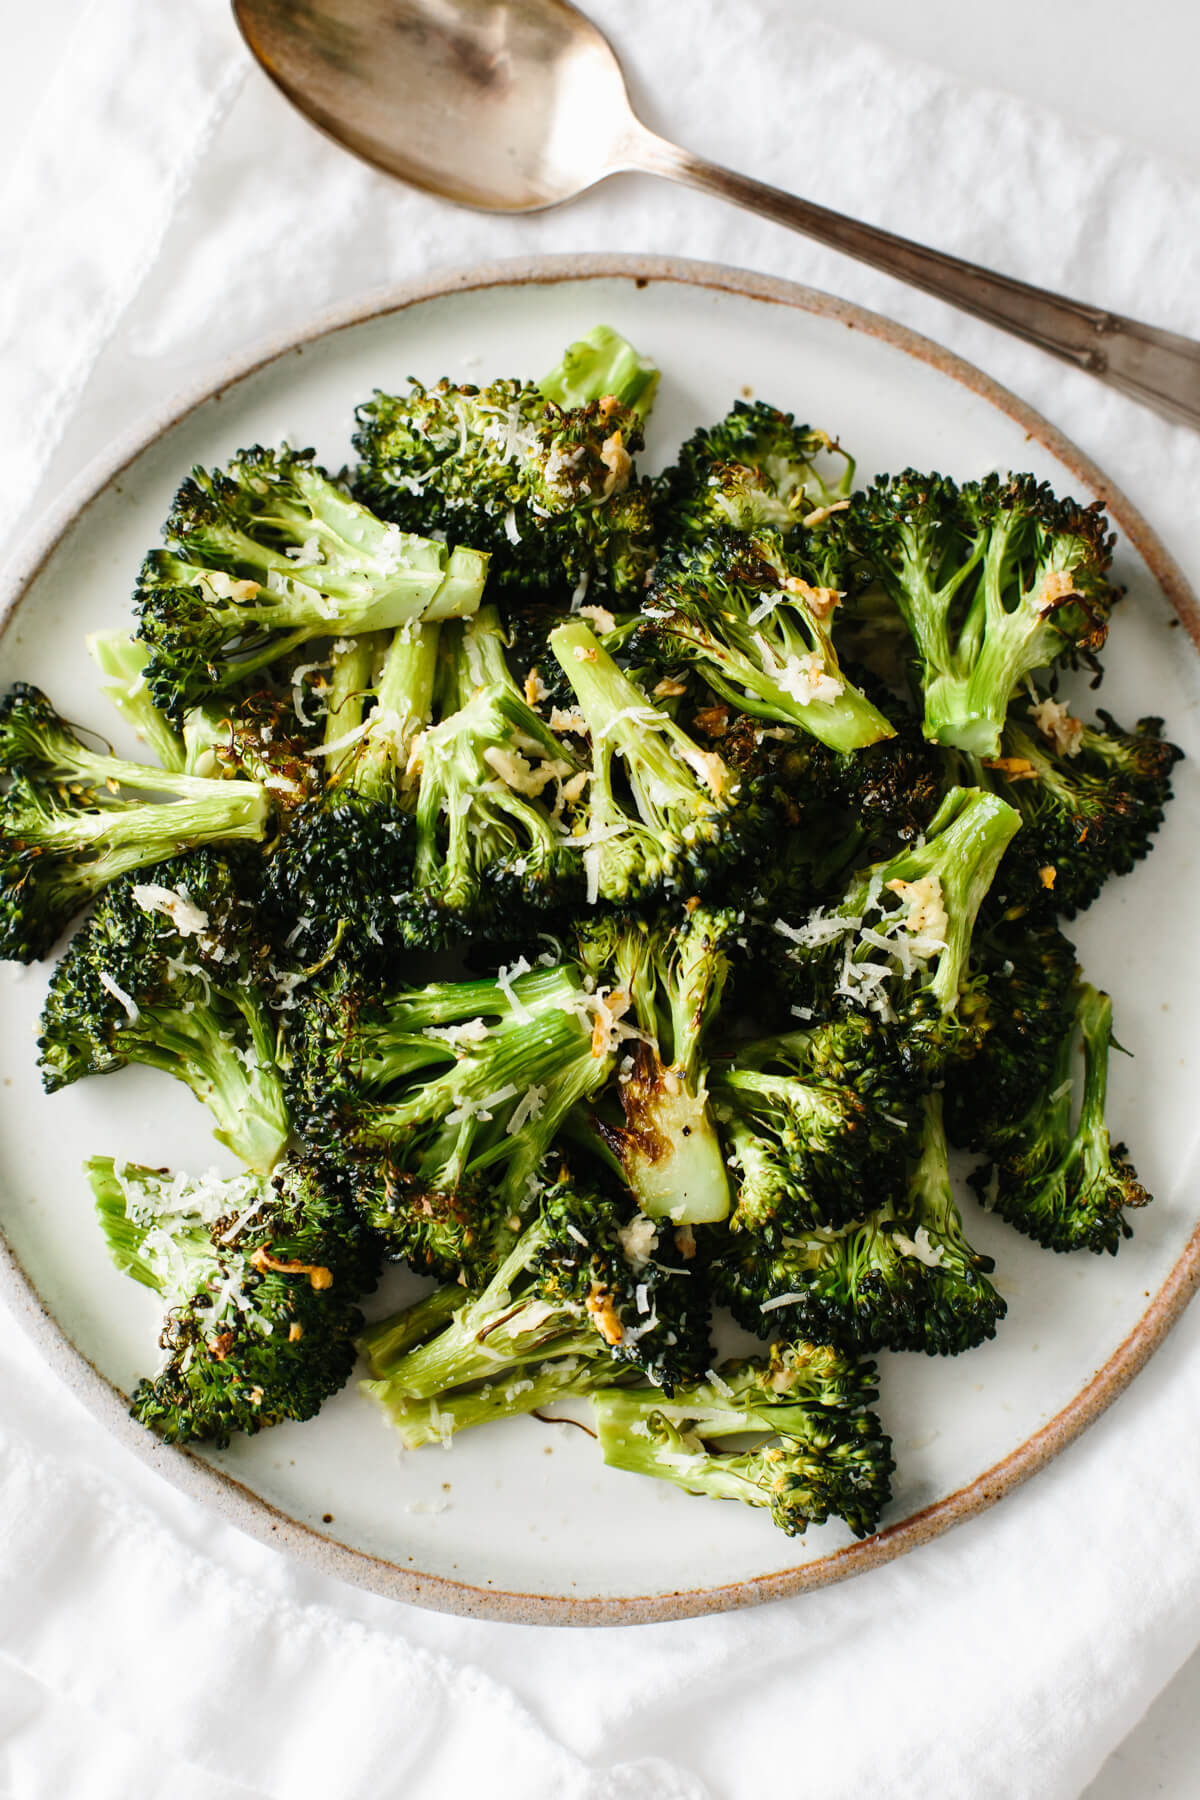 Roasted broccoli on a white plate.